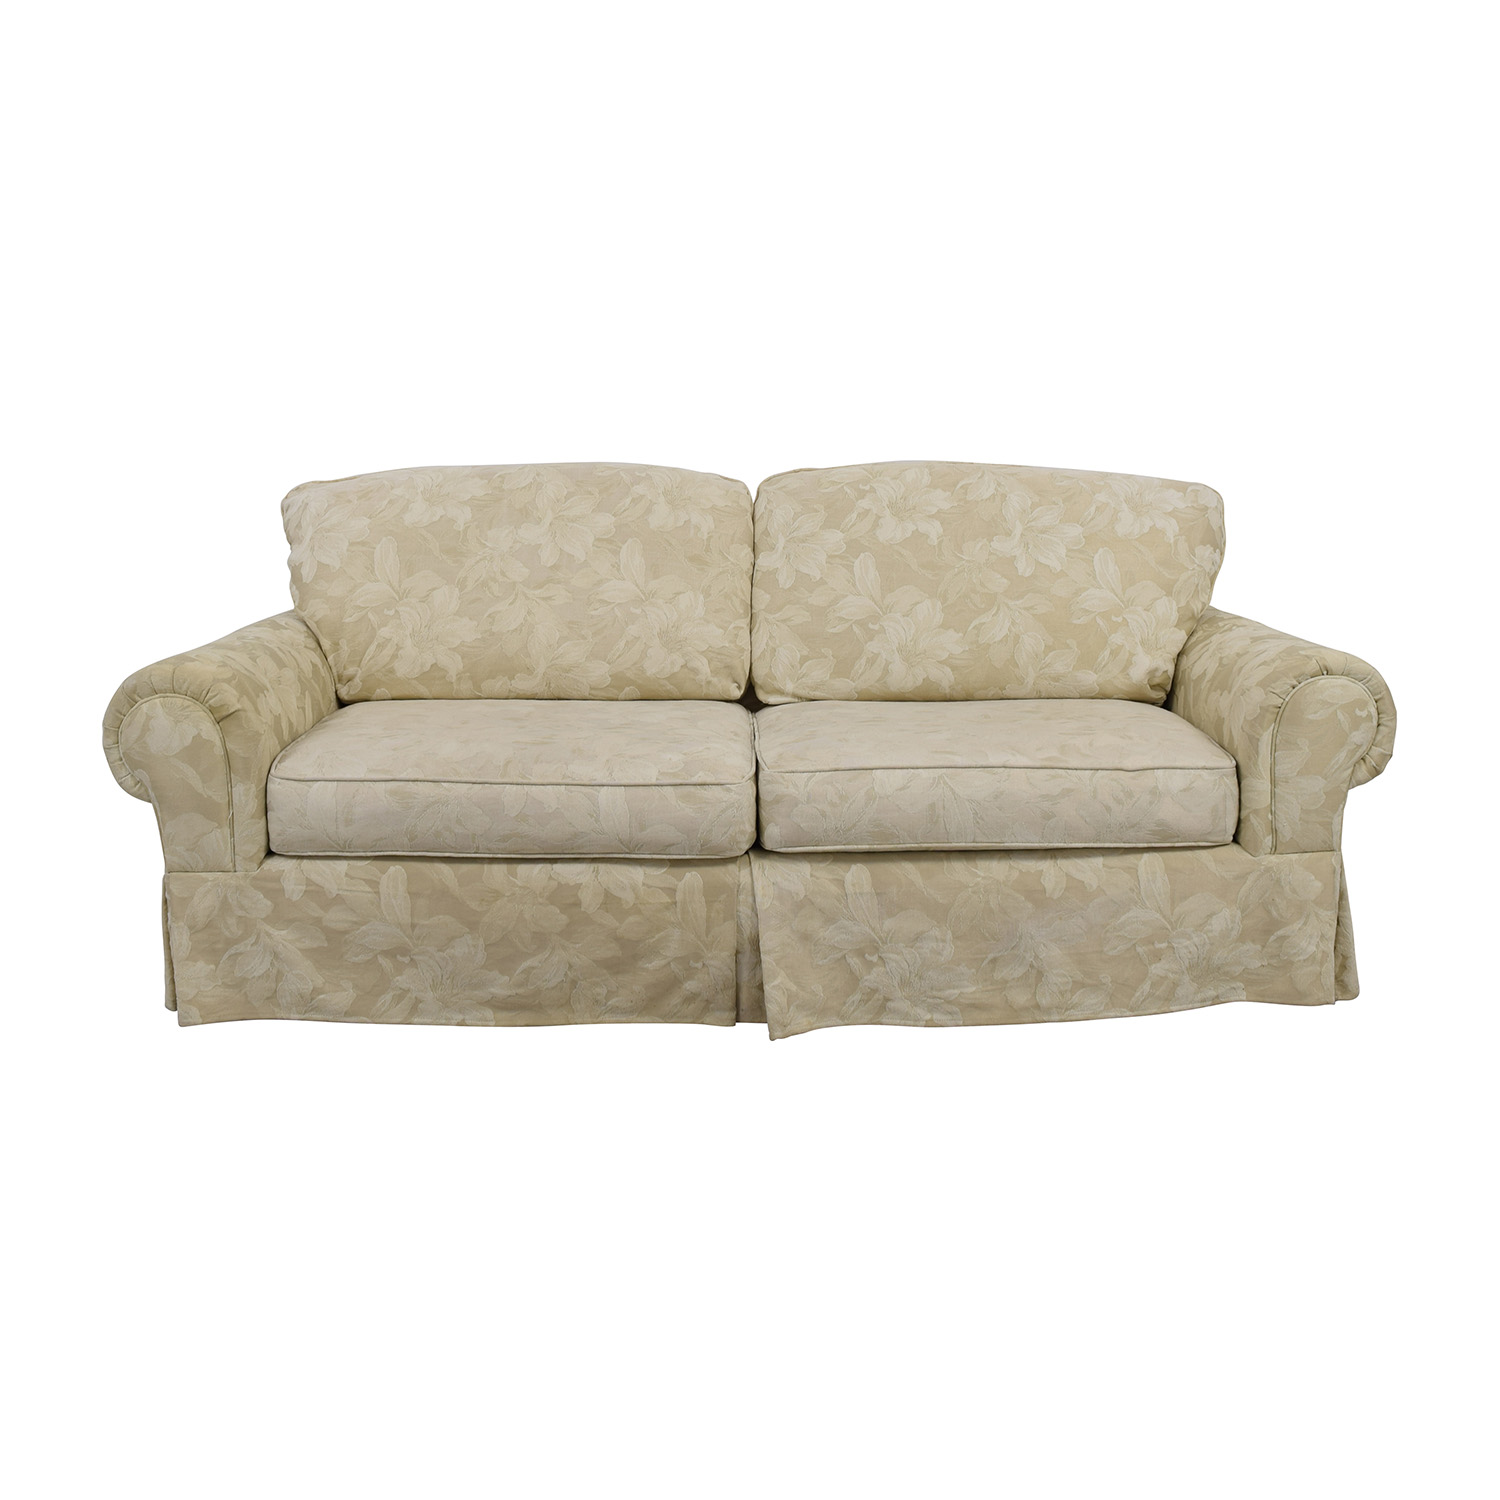 White Jacquard Lilly Upholstered Sofa second hand